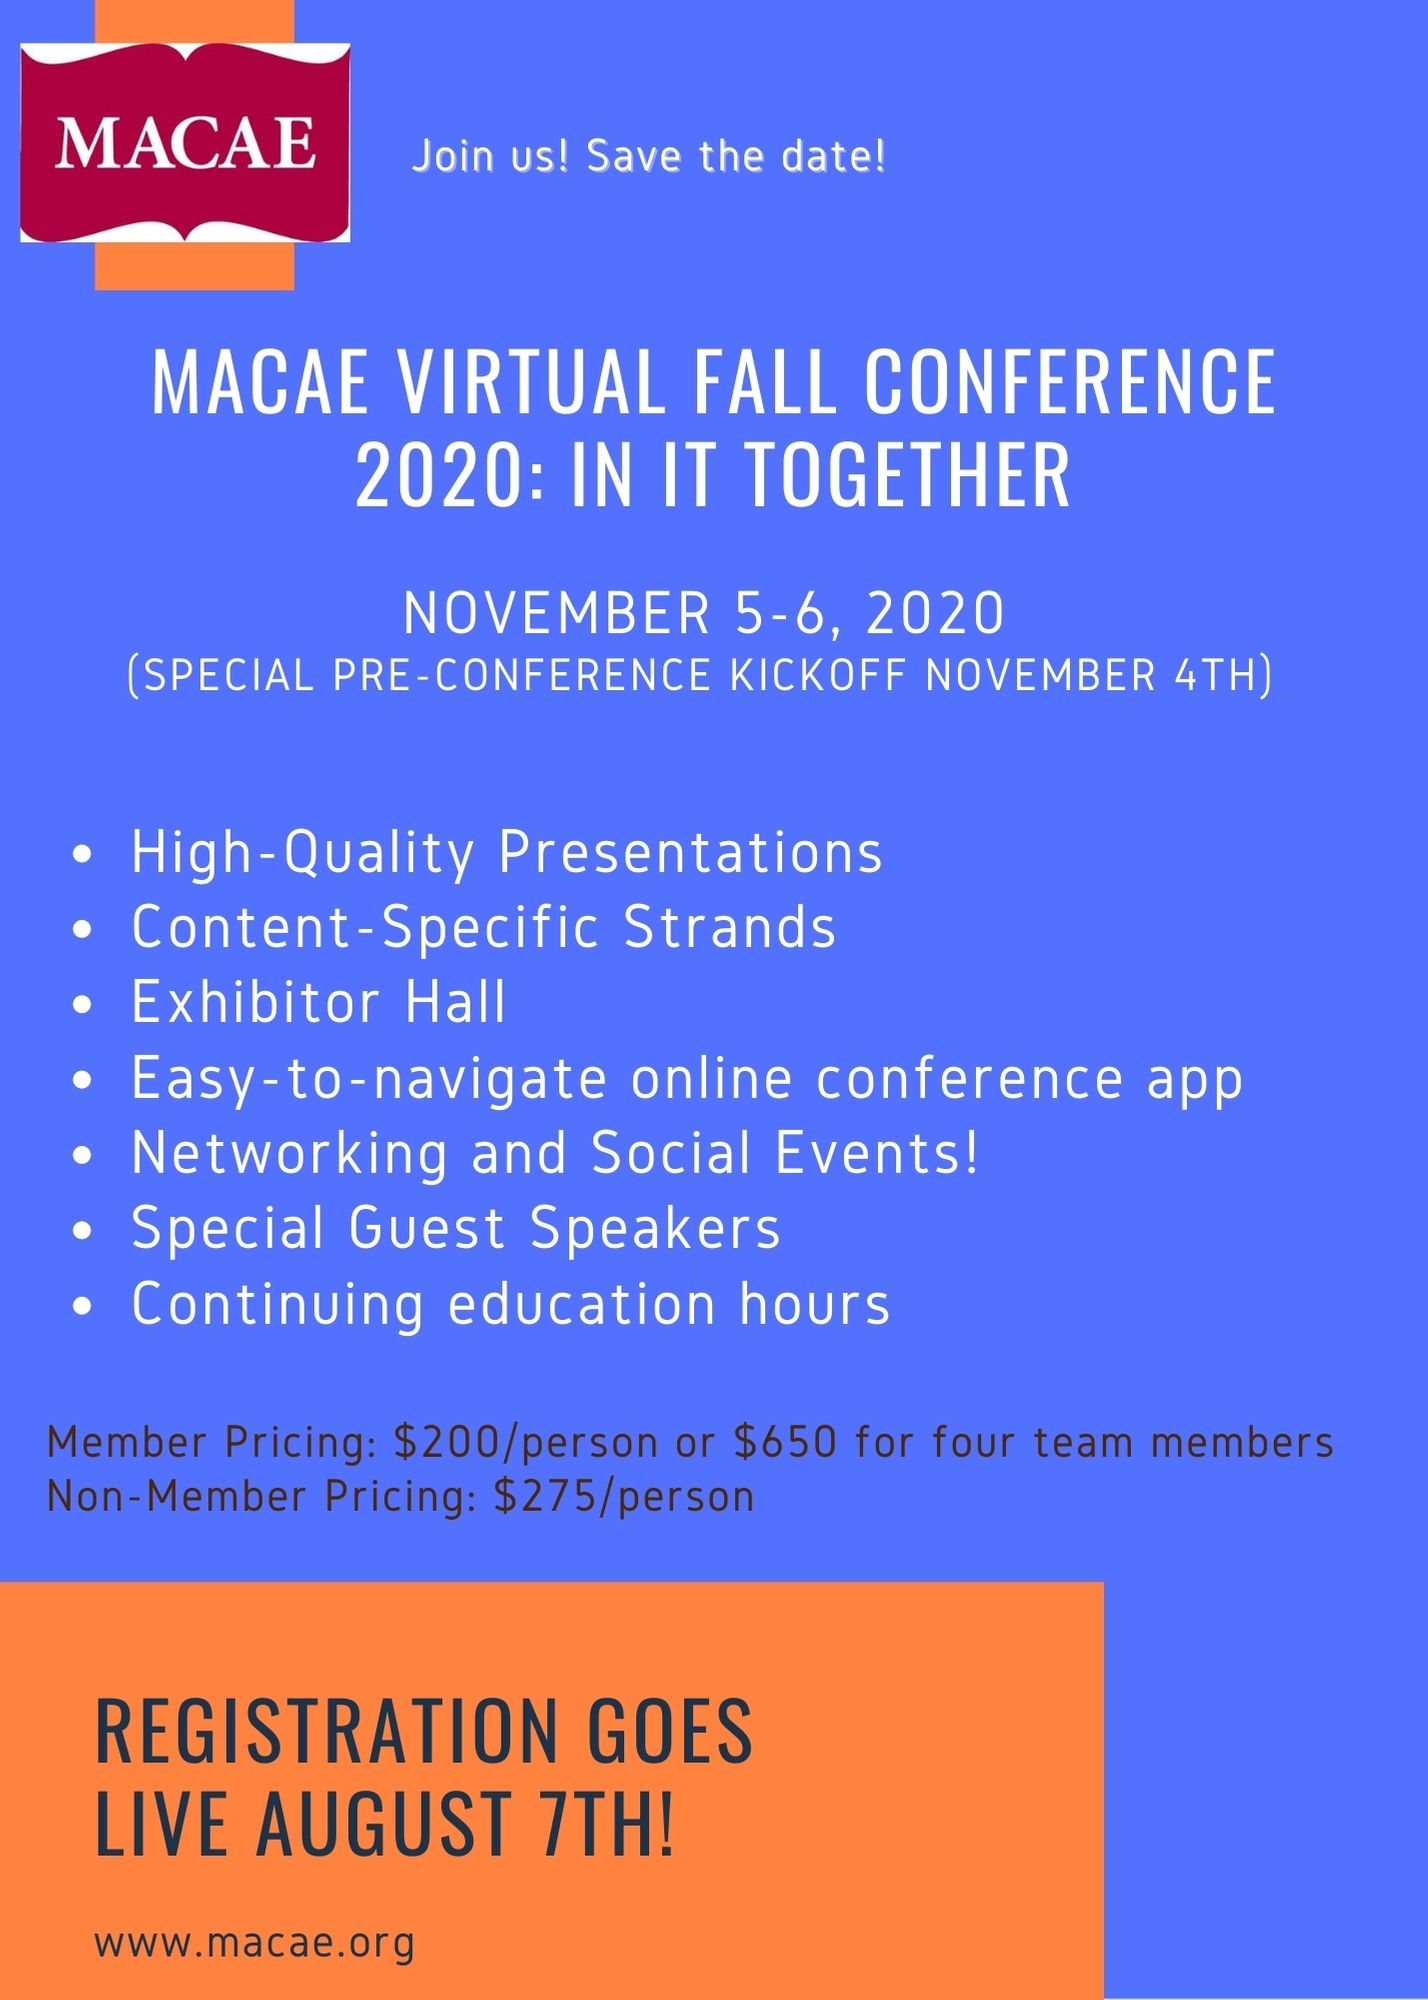 MACAE Virtual Fall Conference 2020: In It Together